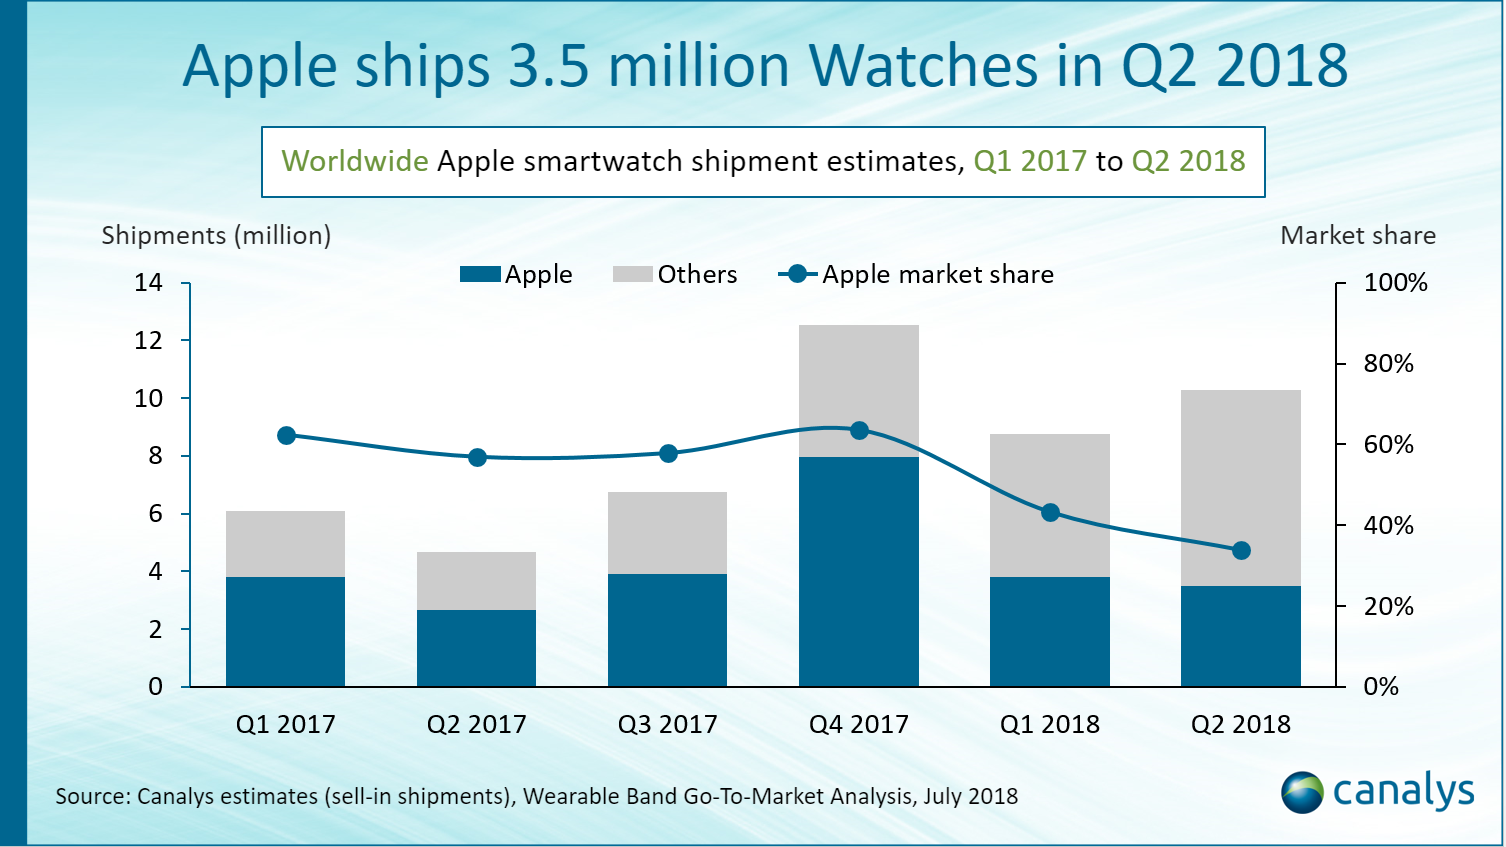 Vendas do Apple Watch no segundo trimestre de 2018, Canalys